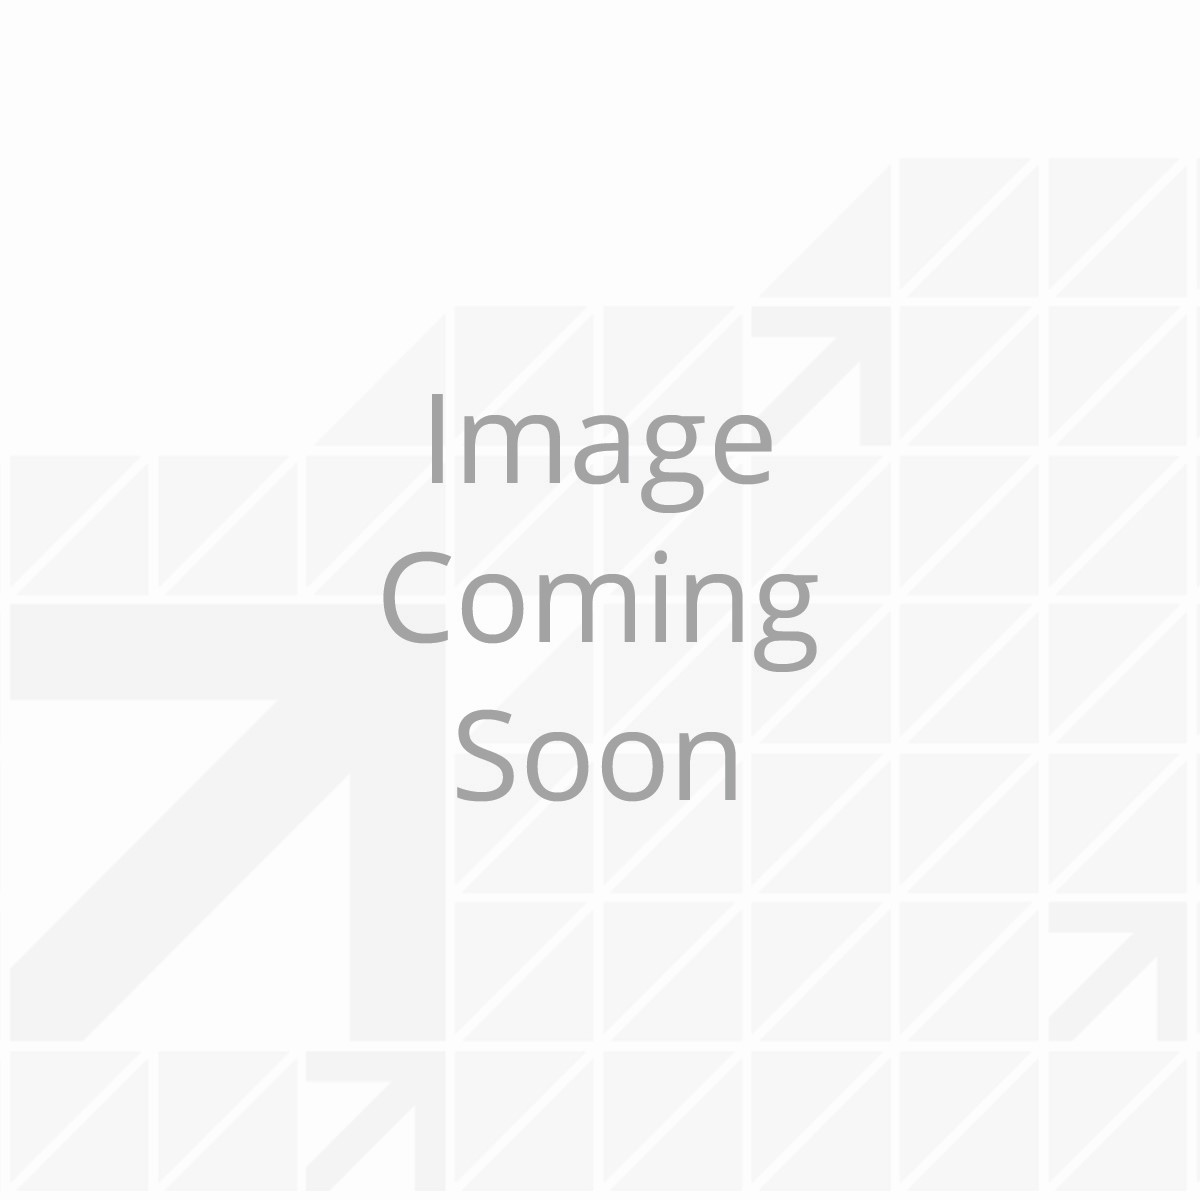 Waterproof On/Off Switch Assembly for Power Tongue Jack